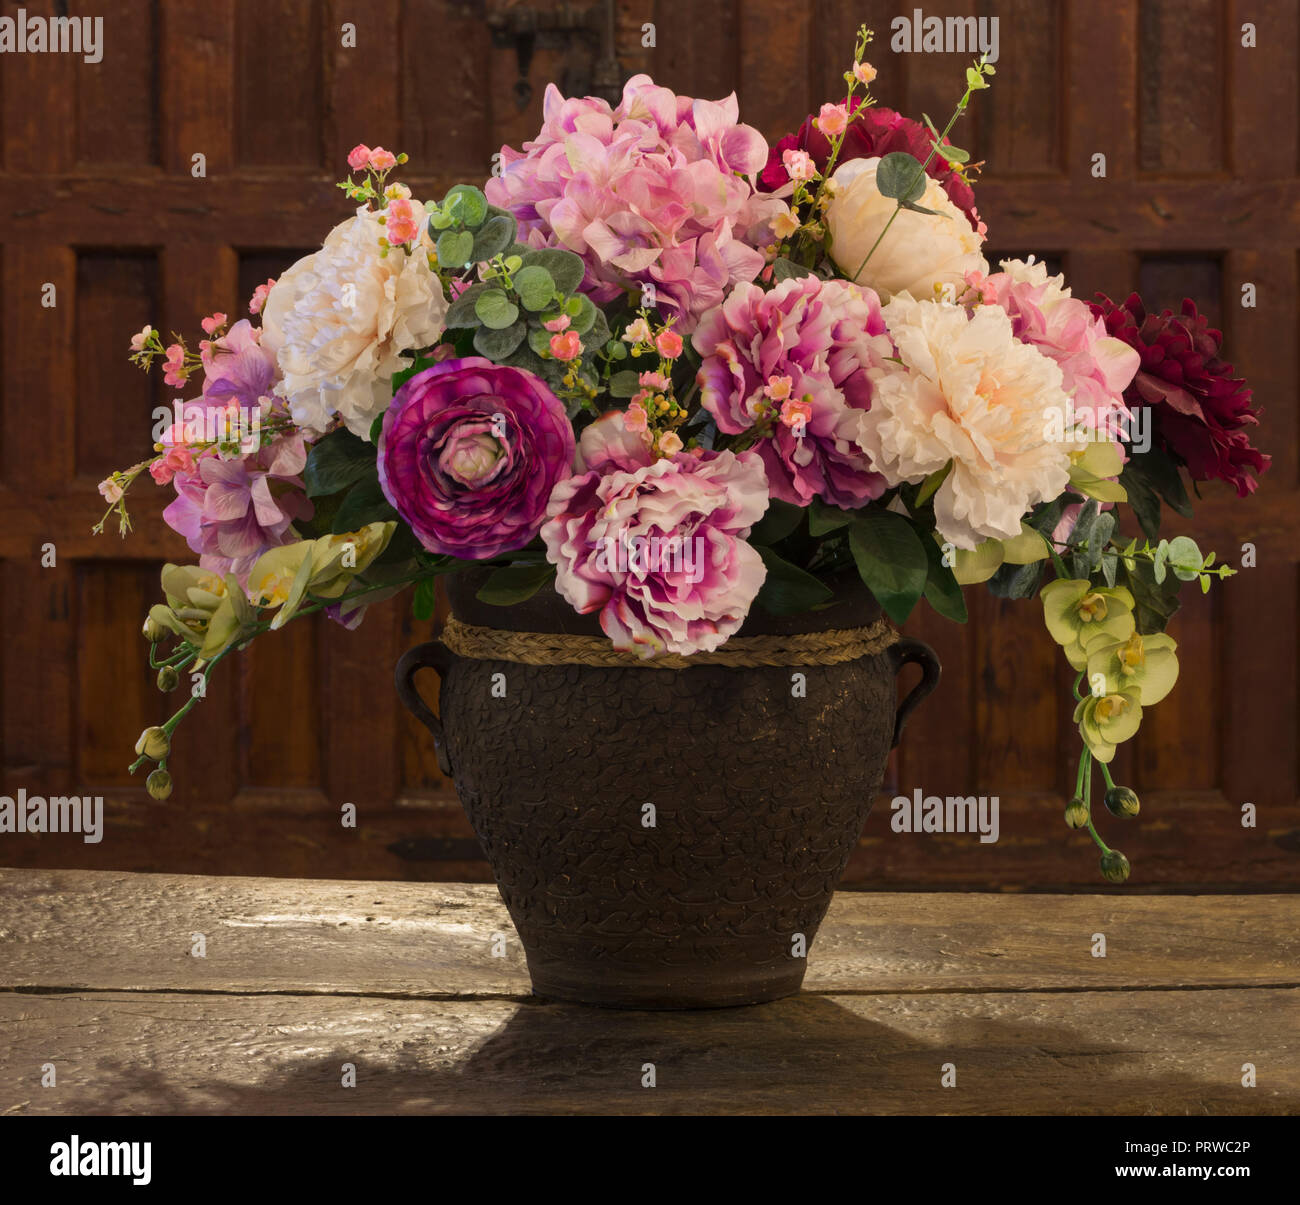 Flower arrangement in old vase on distressed table. - Stock Image